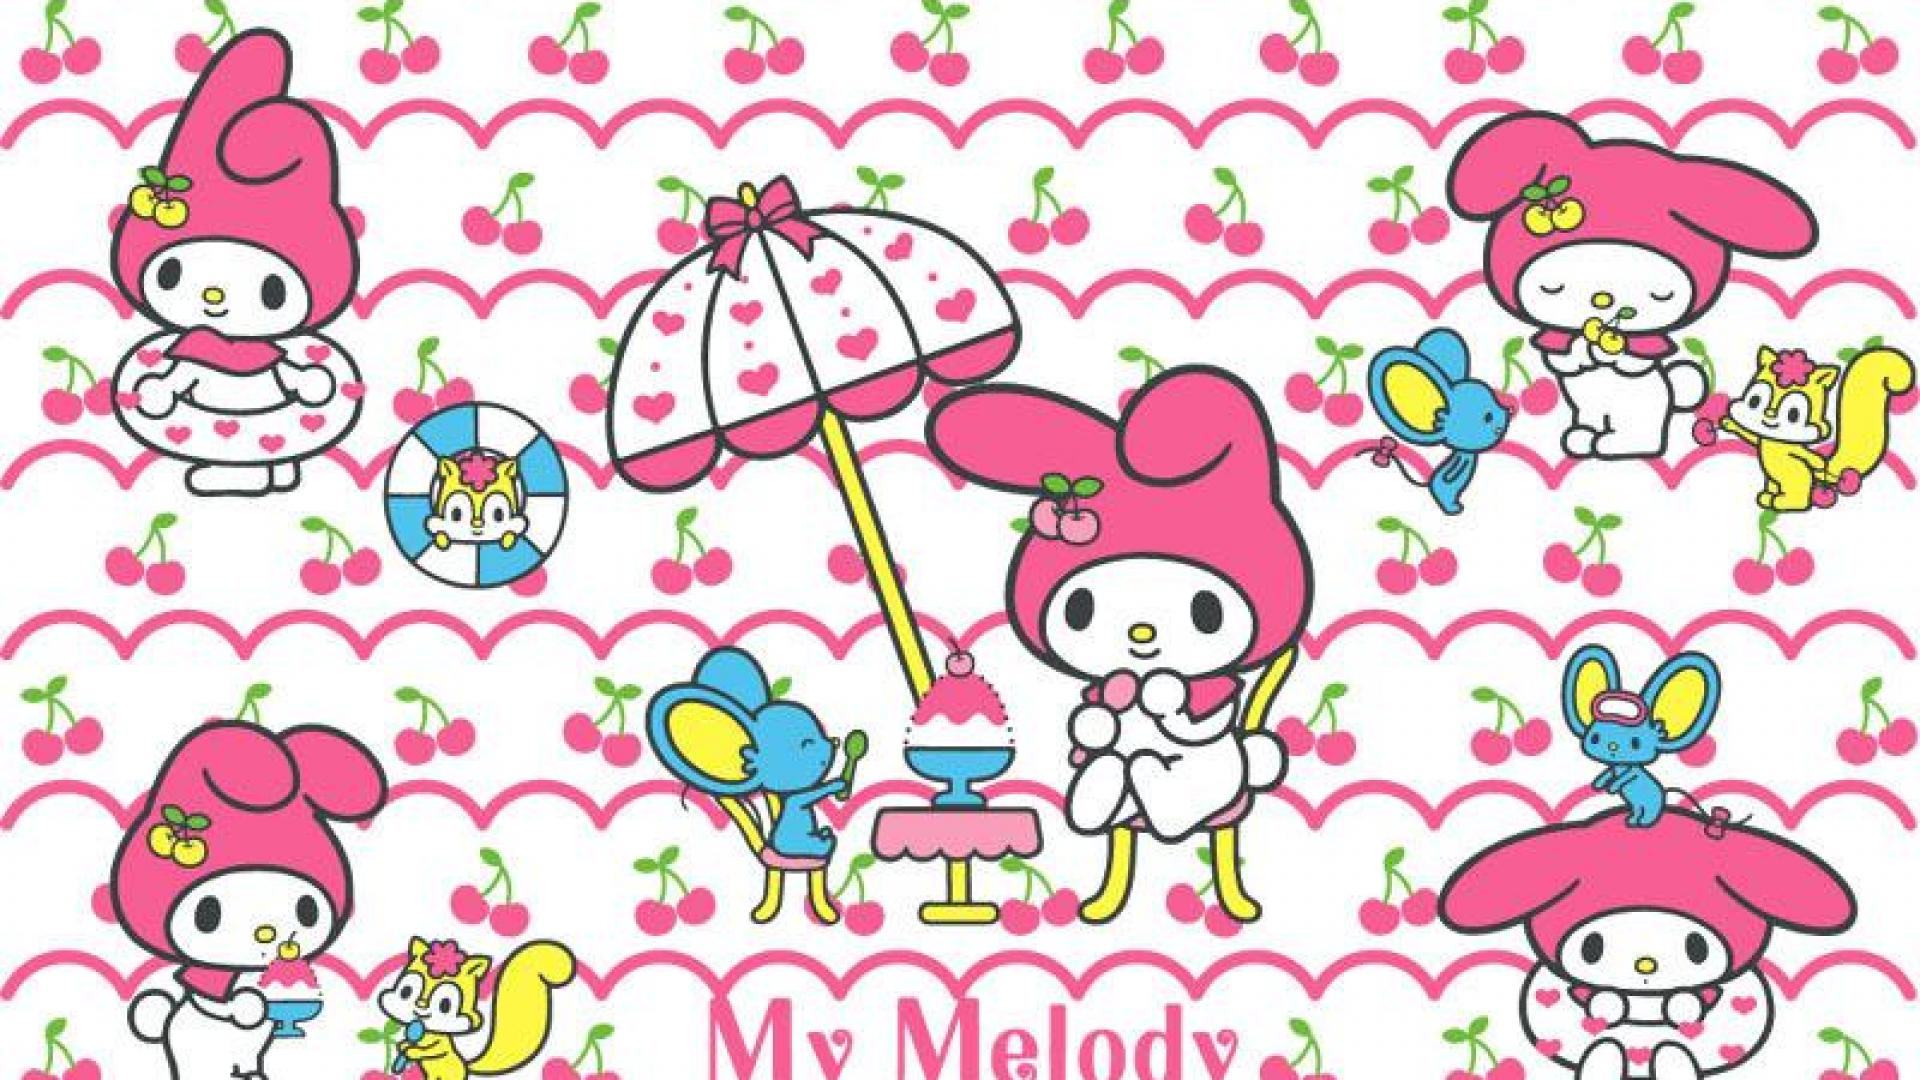 My Melody Sanrio Wallpapers - Top Free My Melody Sanrio